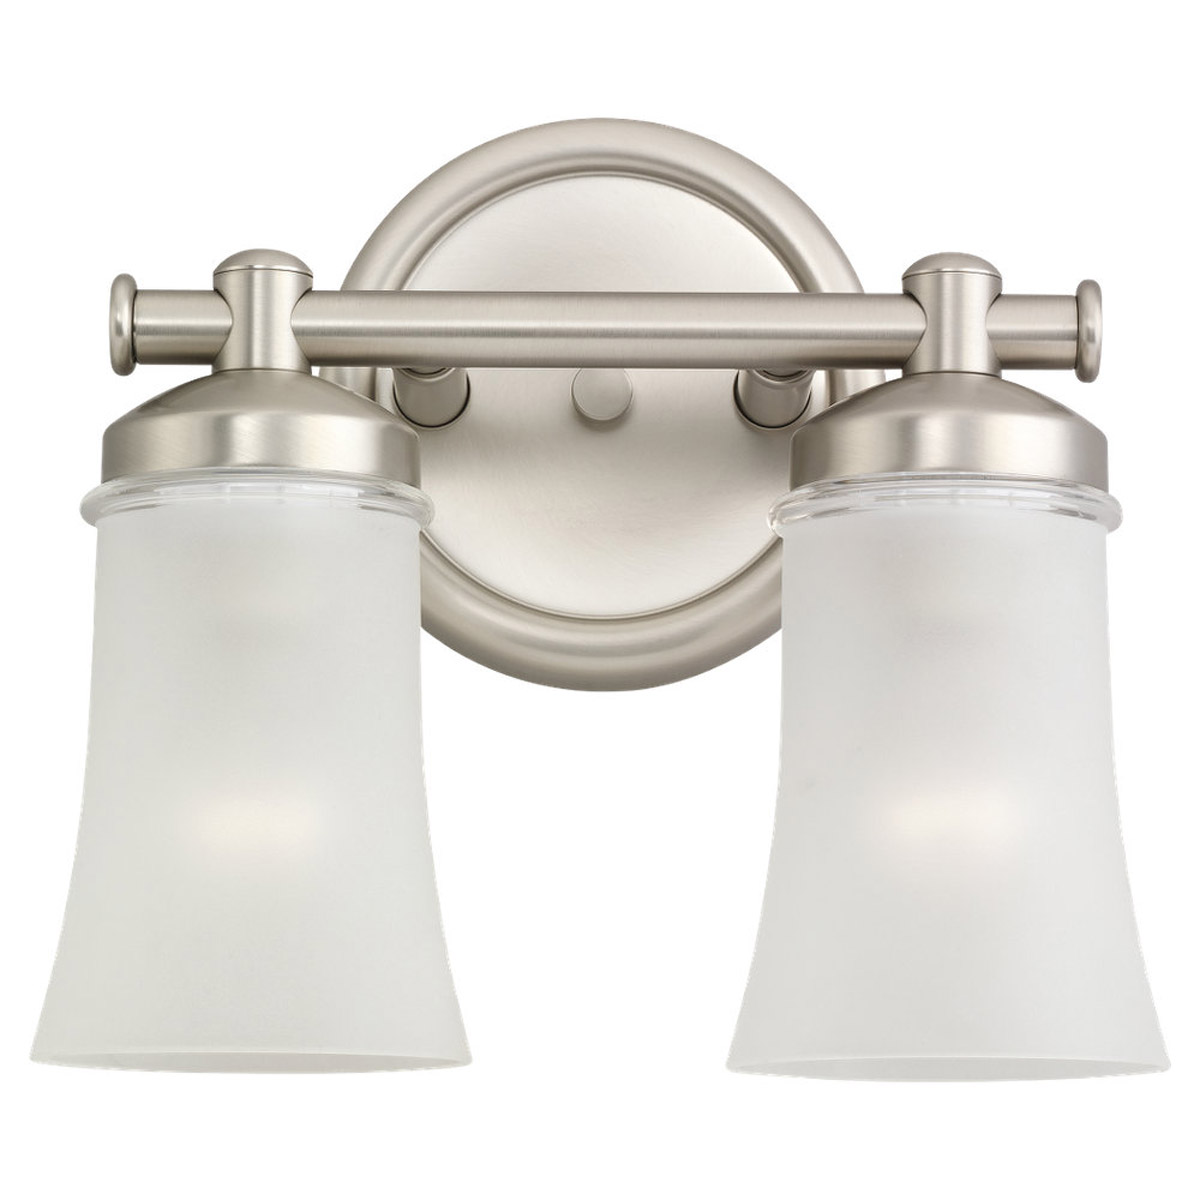 Sea Gull Lighting Newport 2 Light Bath Vanity in Antique Brushed Nickel 44483-965 photo